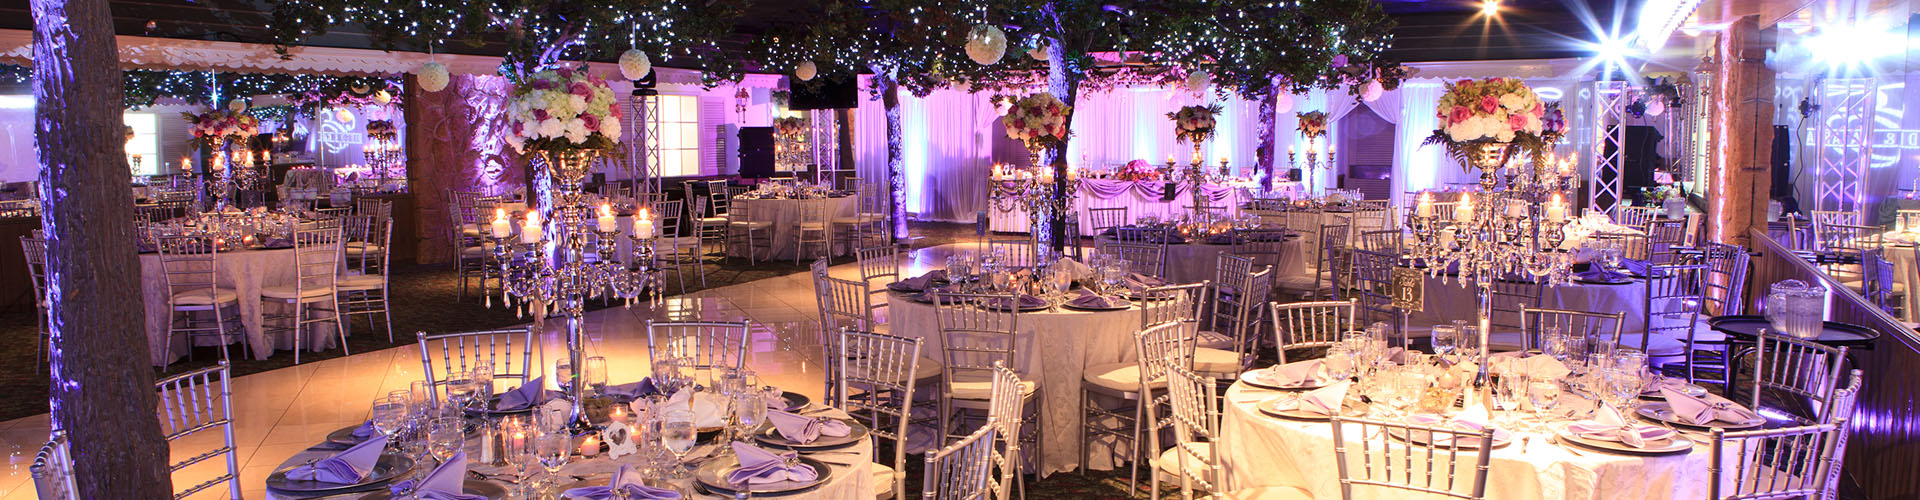 Millenium decorations catering banquet hall decorations chicago full width image junglespirit Choice Image